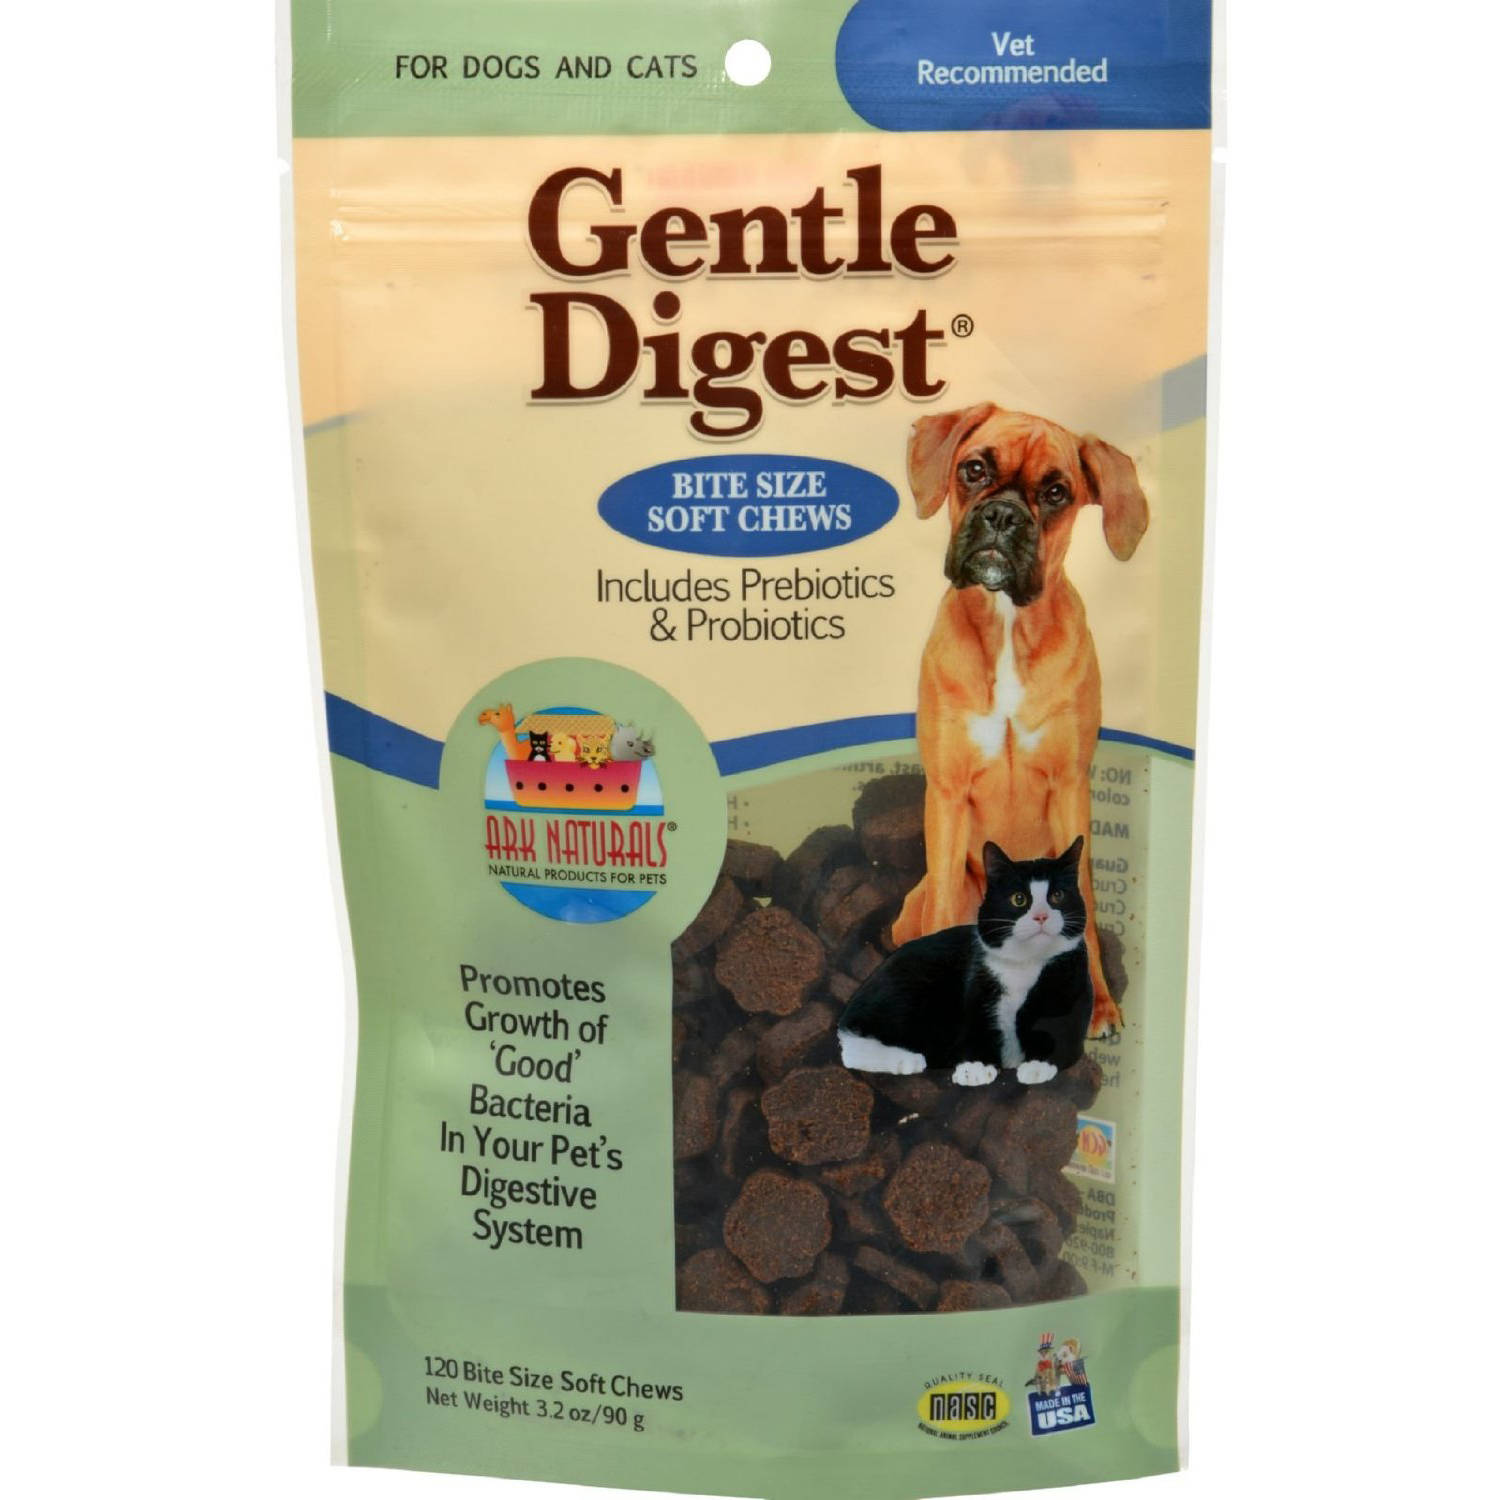 Ark Naturals Gentle Digest Soft Chews for Dogs and Cats, 3.2 oz